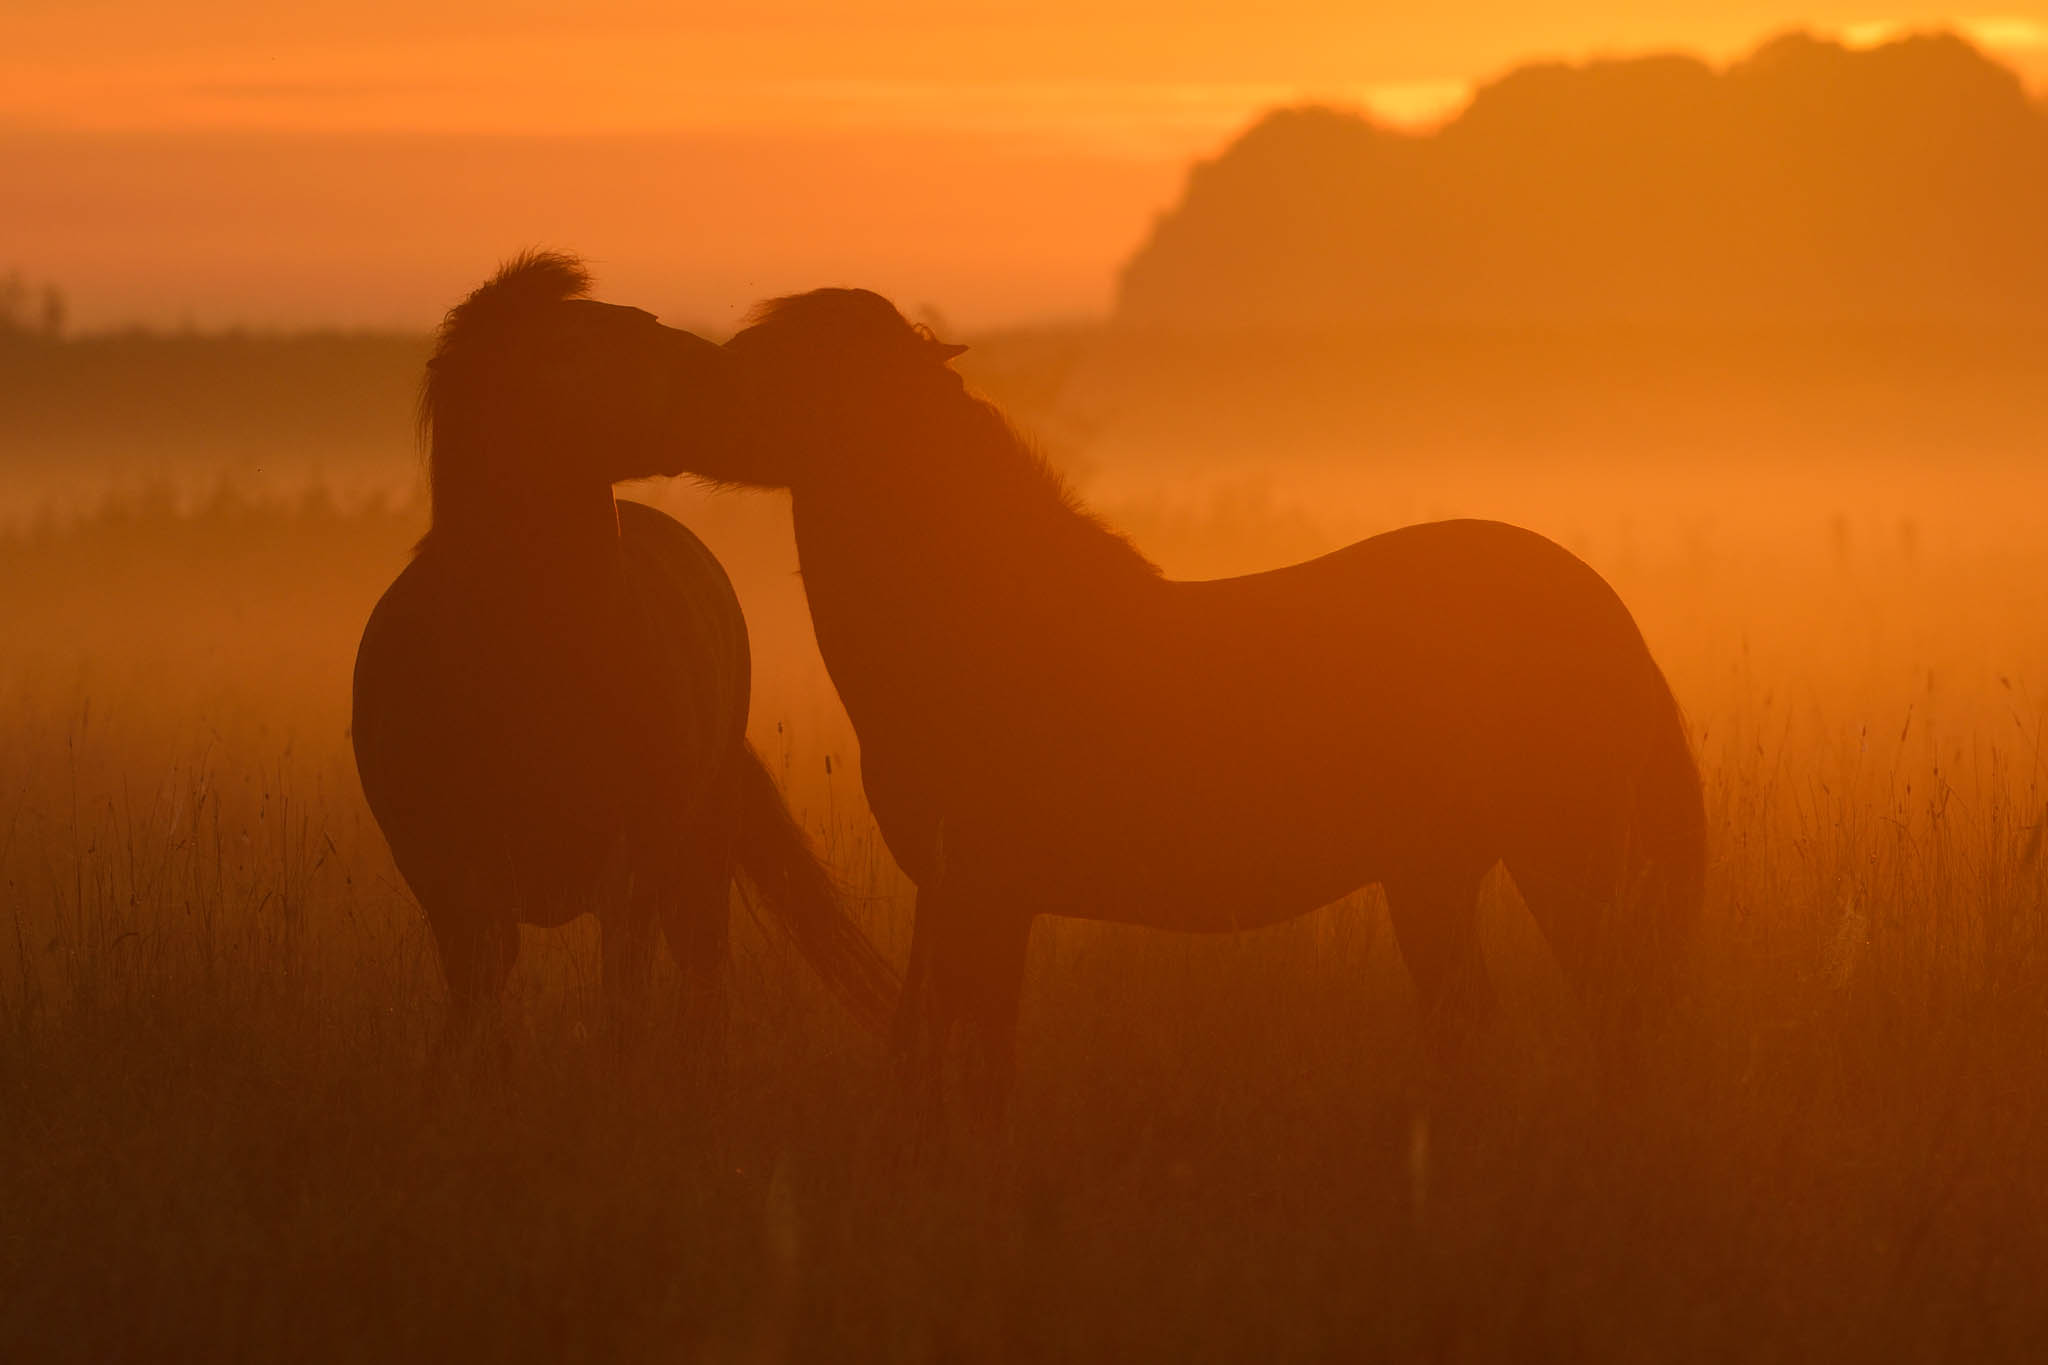 Exmoor ponies, one of the oldest and most primitive horse breeds in Europe